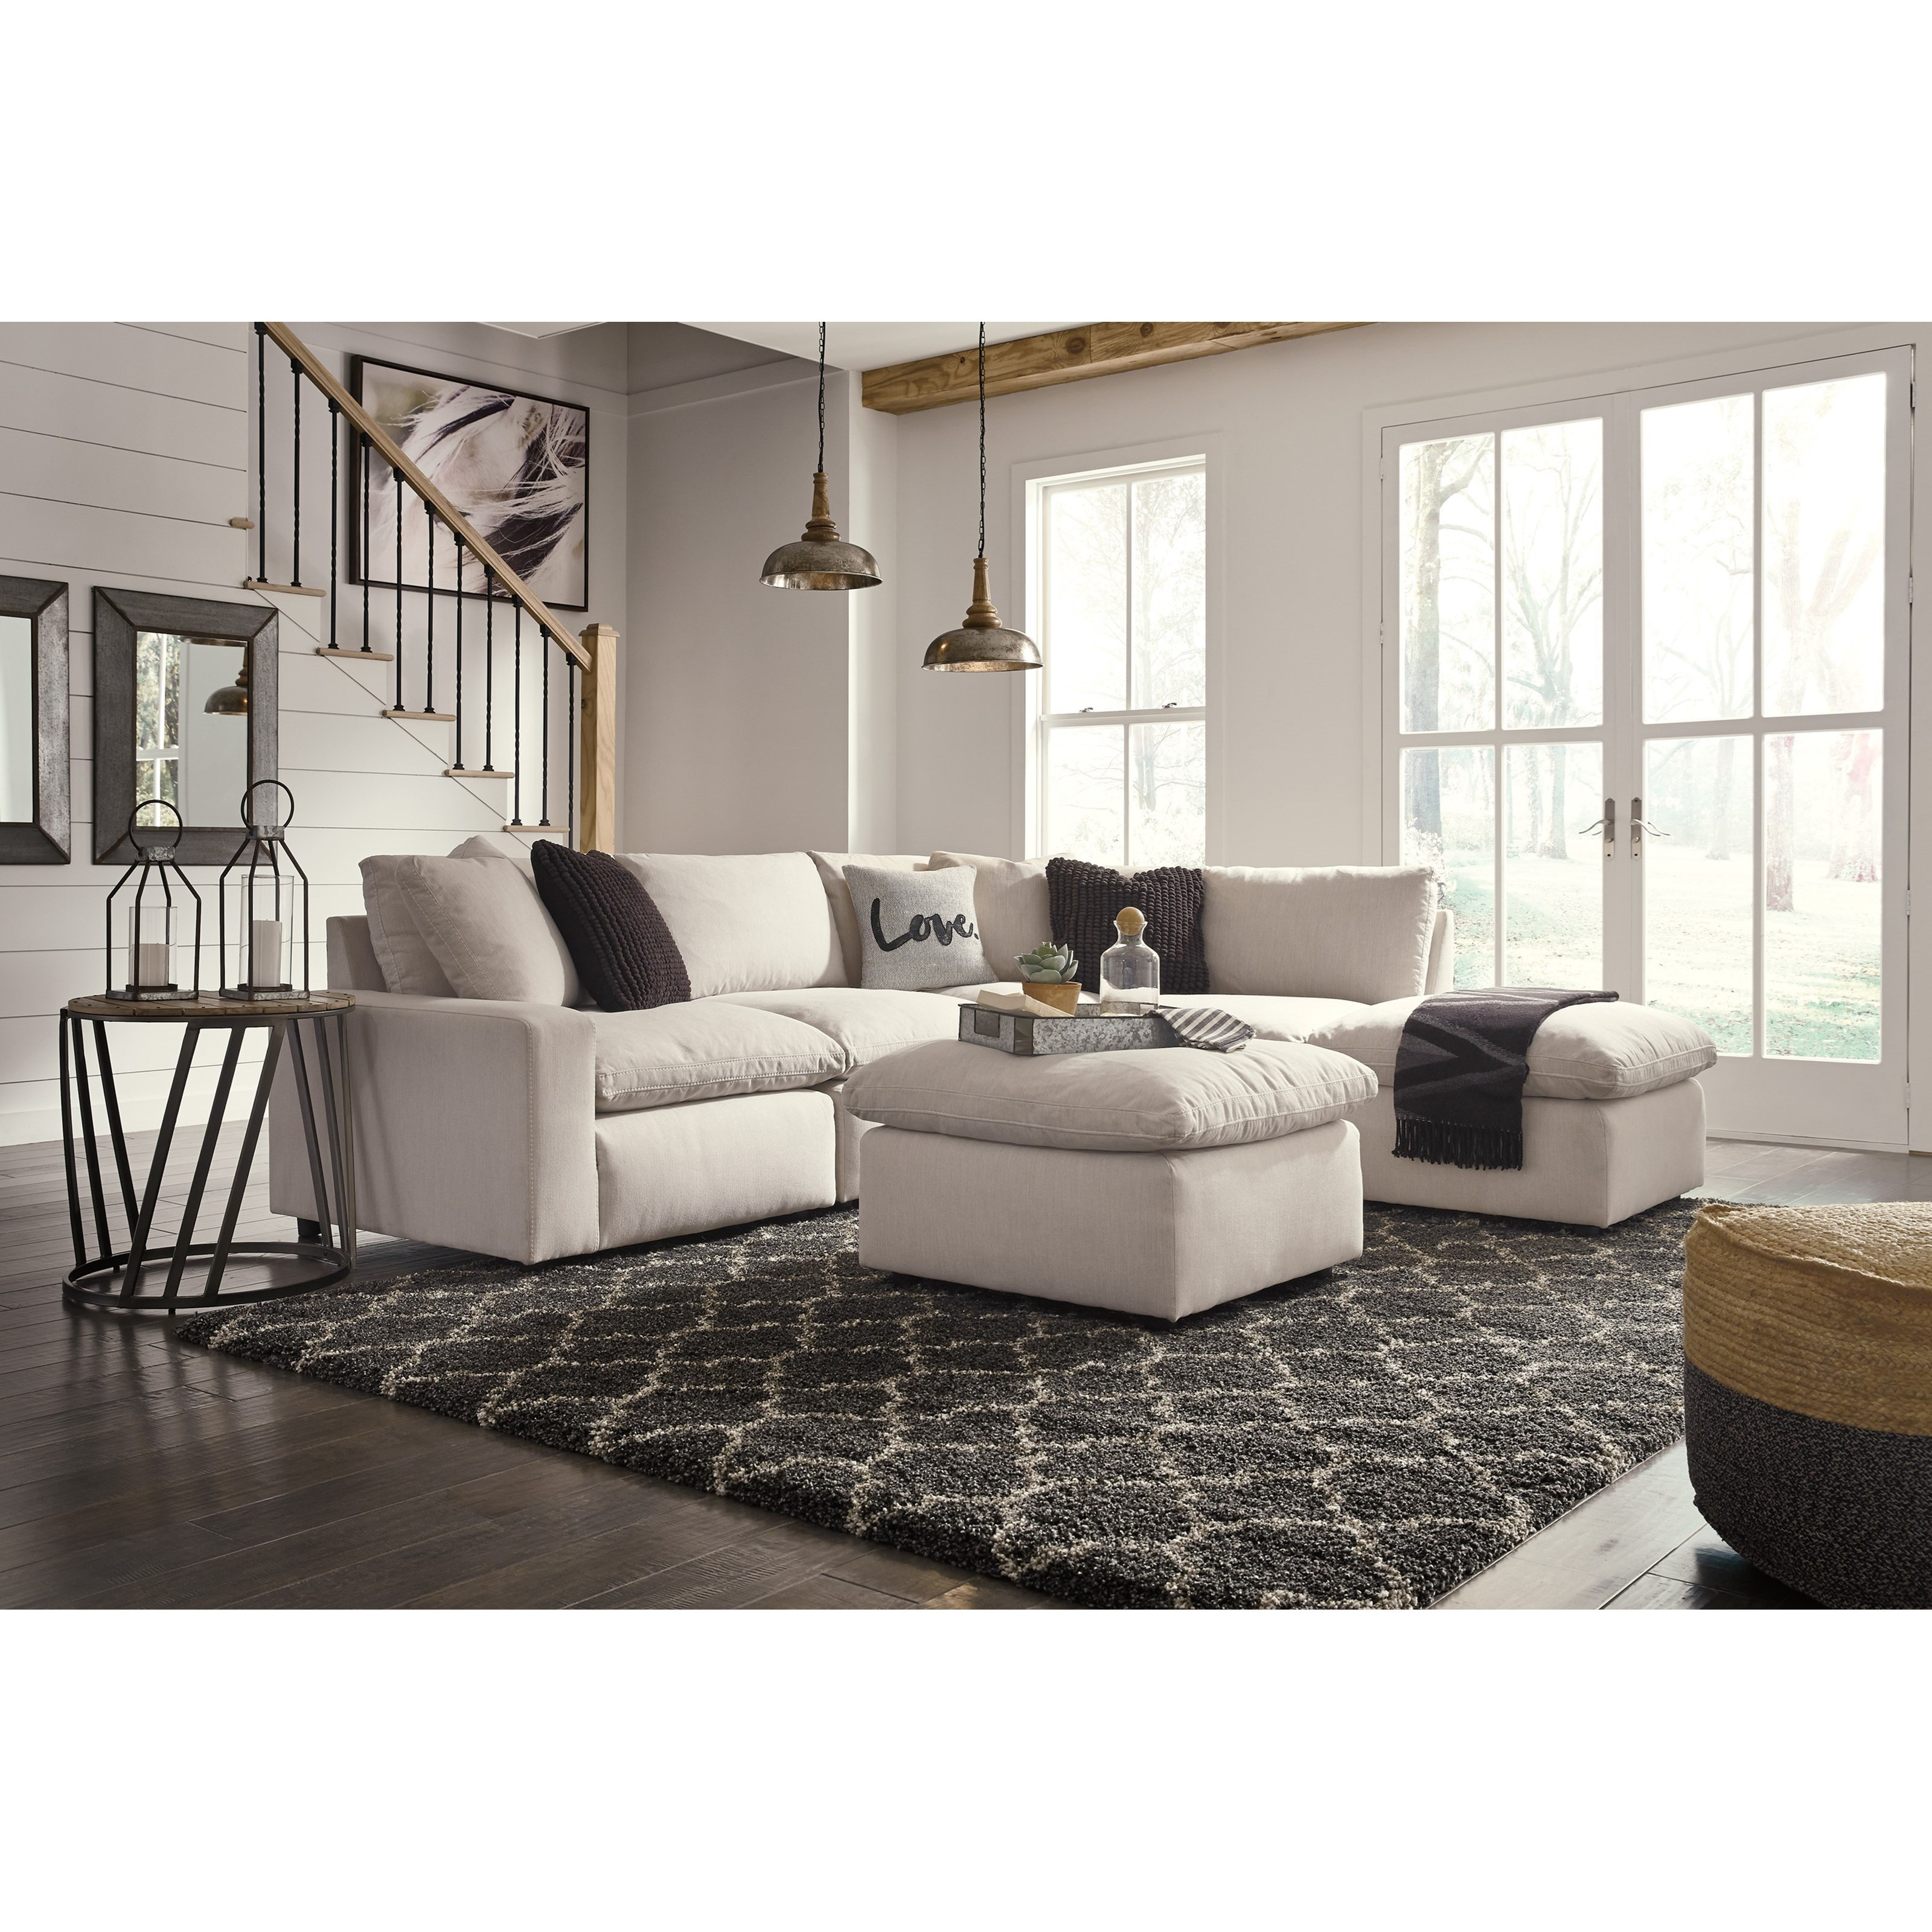 Savesto 6-Piece Sectional by Signature Design by Ashley at Rife's Home Furniture